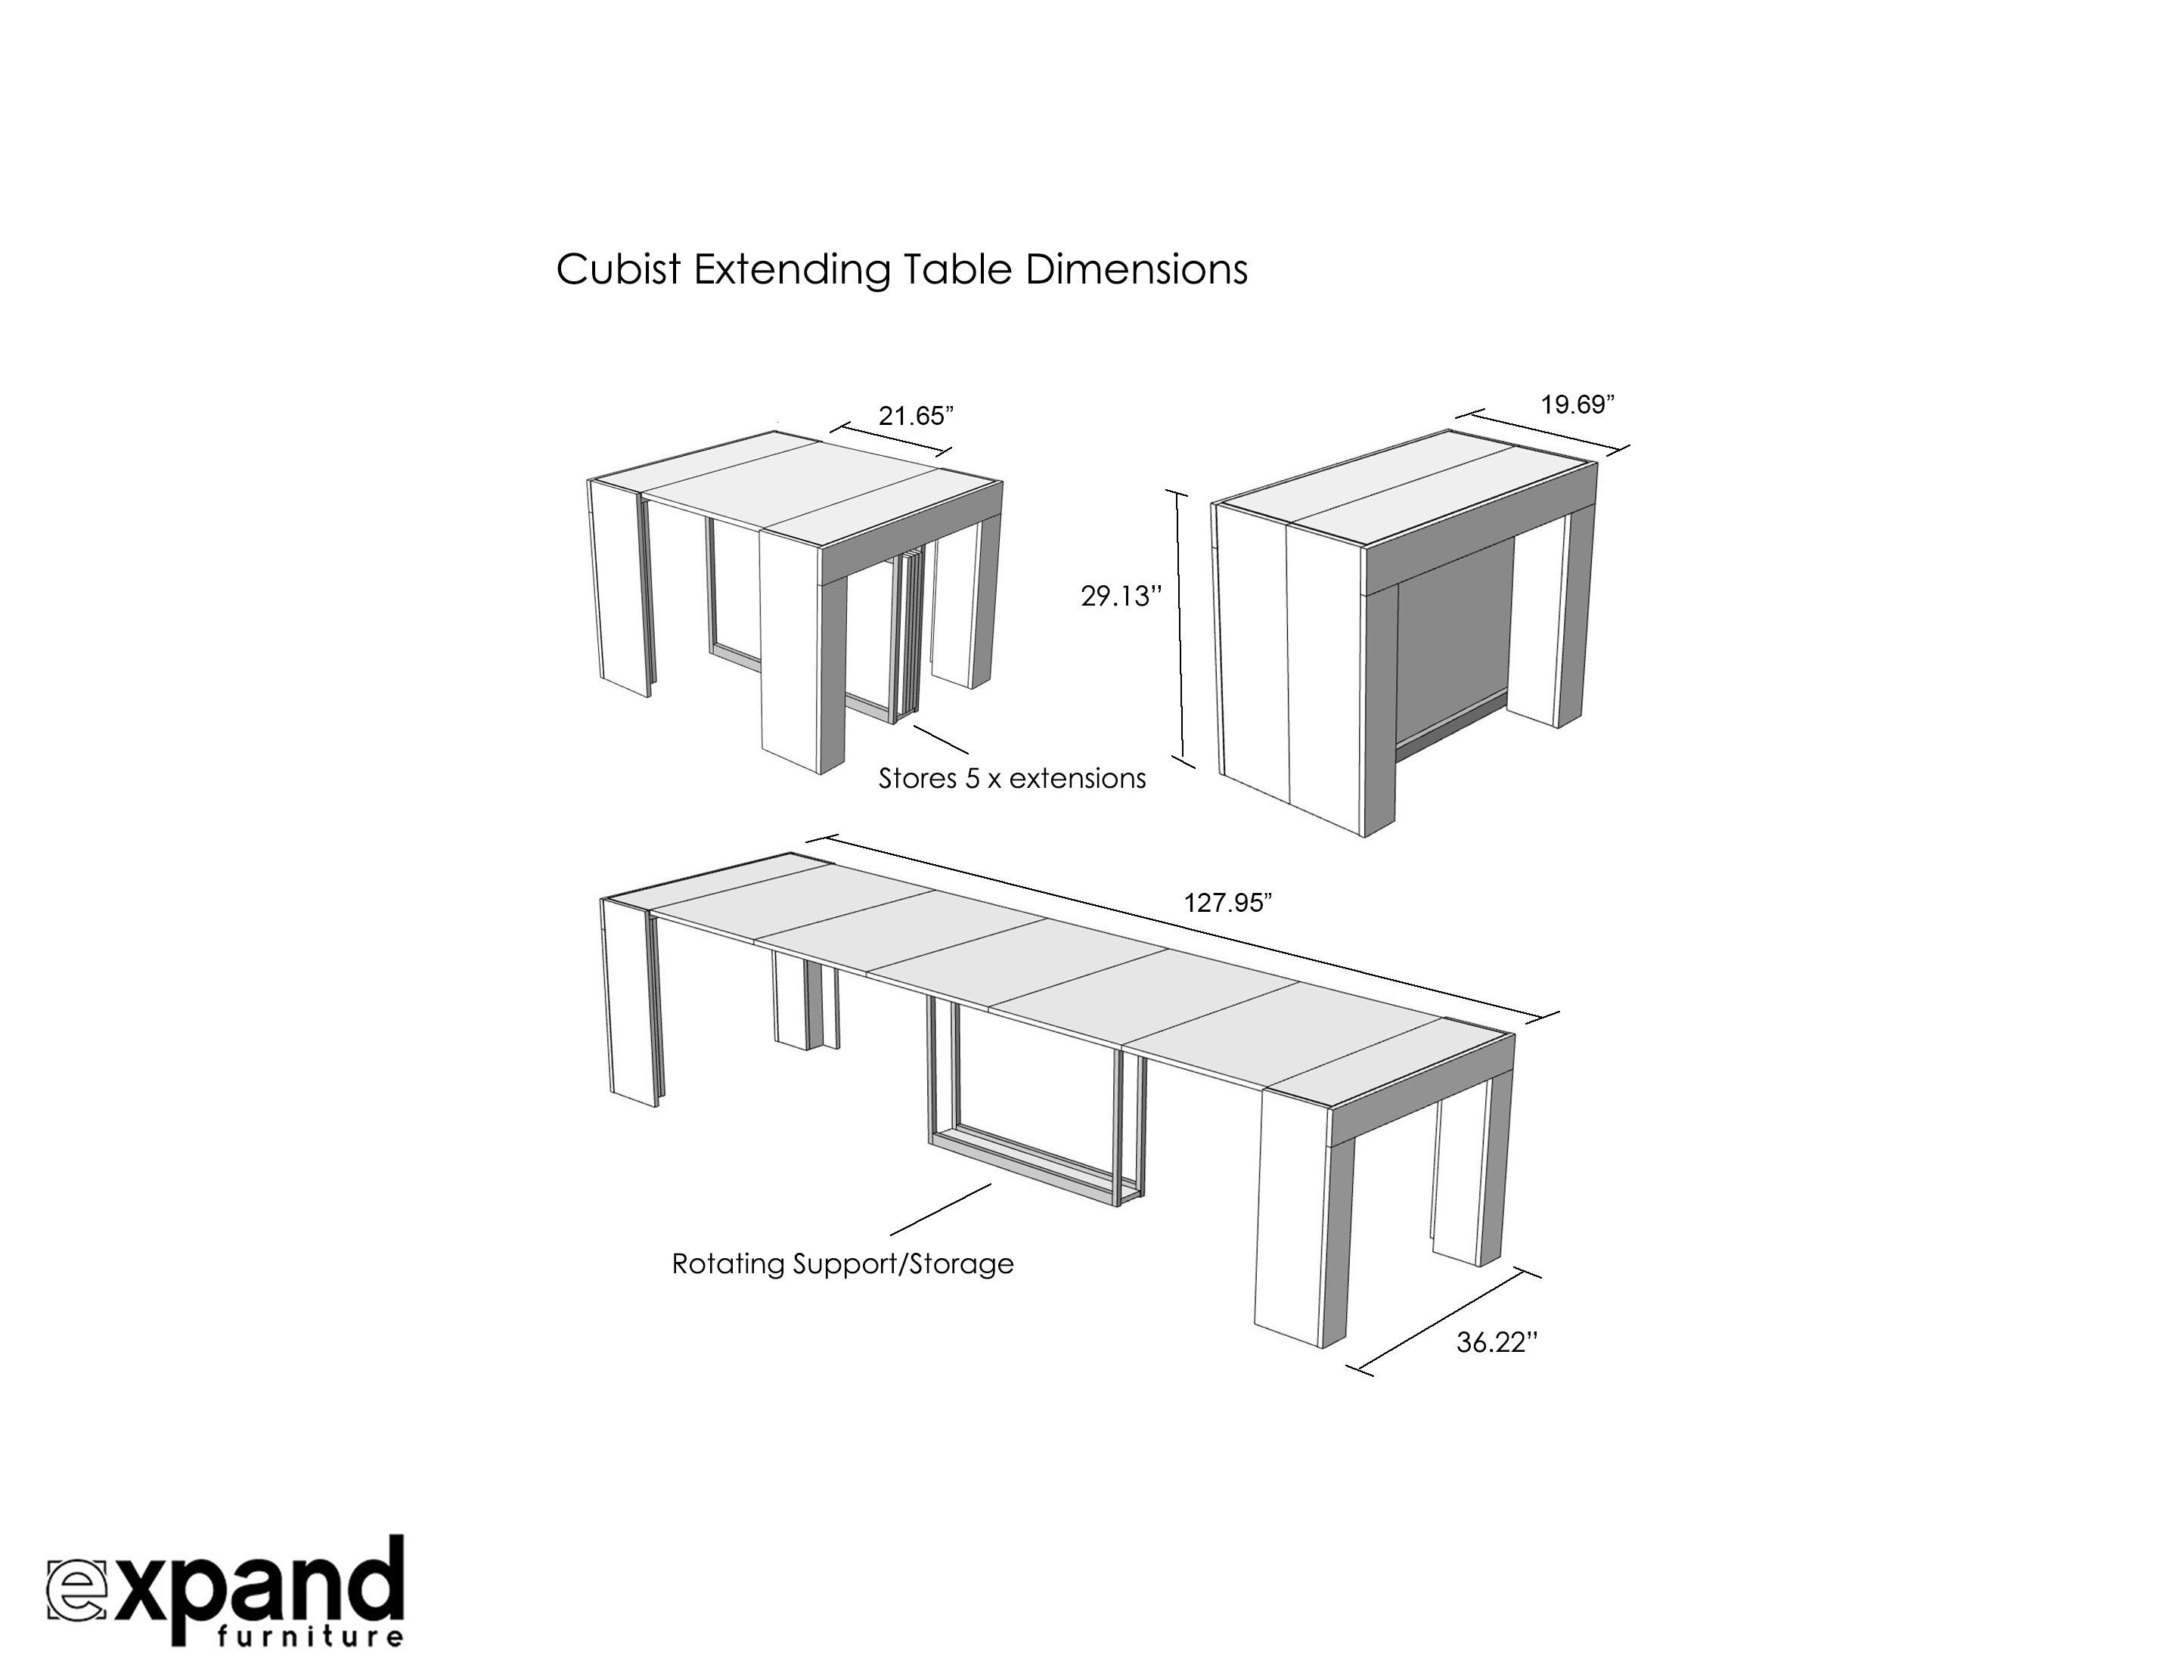 Cubist Table With Built In Extension Storage